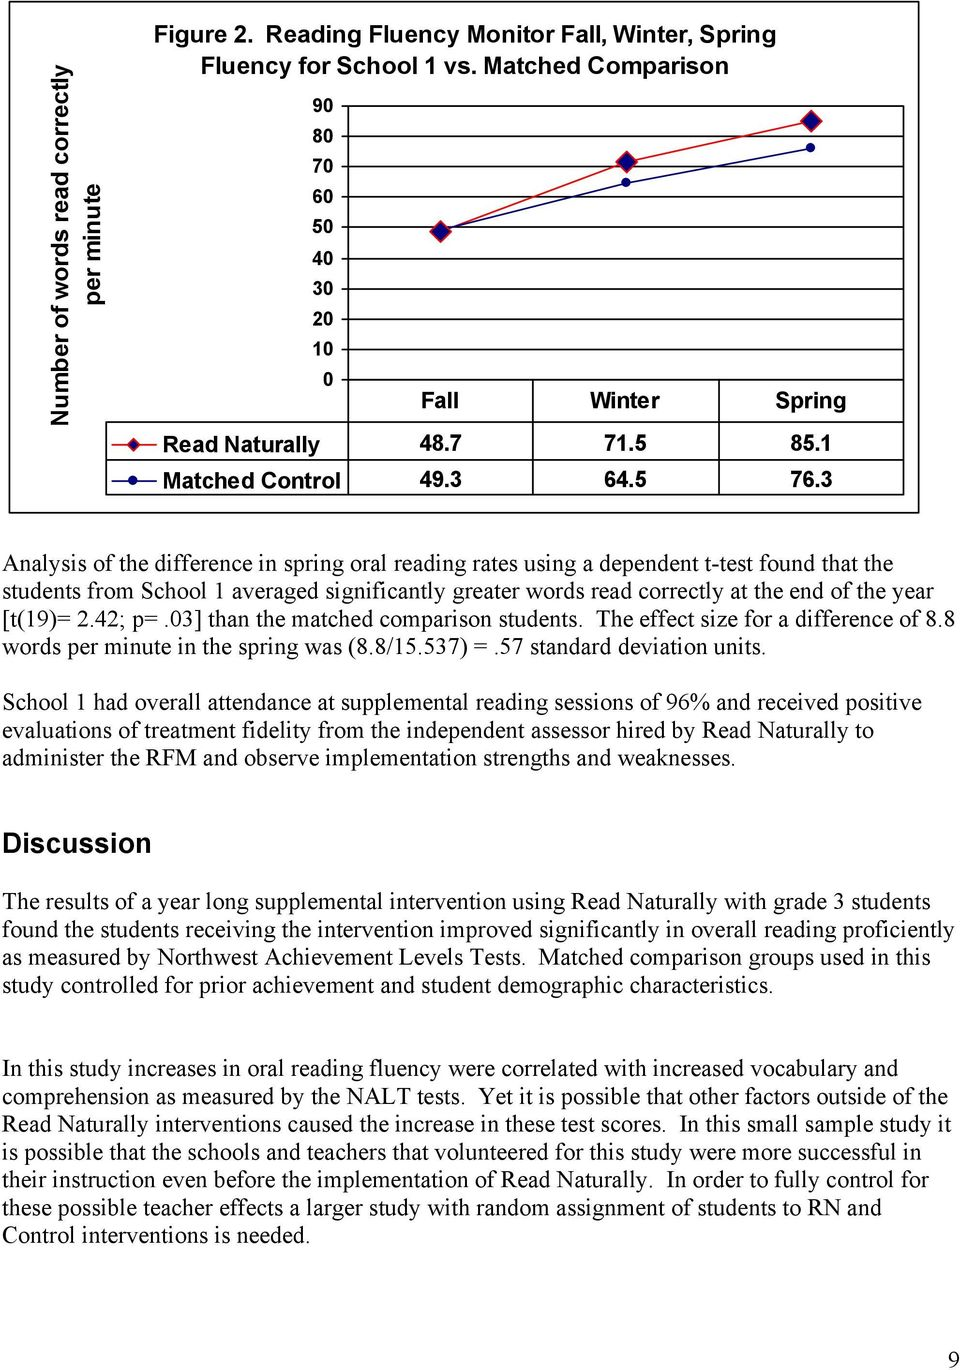 3 Analysis of the difference in spring oral reading rates using a dependent t-test found that the students from School 1 averaged significantly greater words read correctly at the end of the year